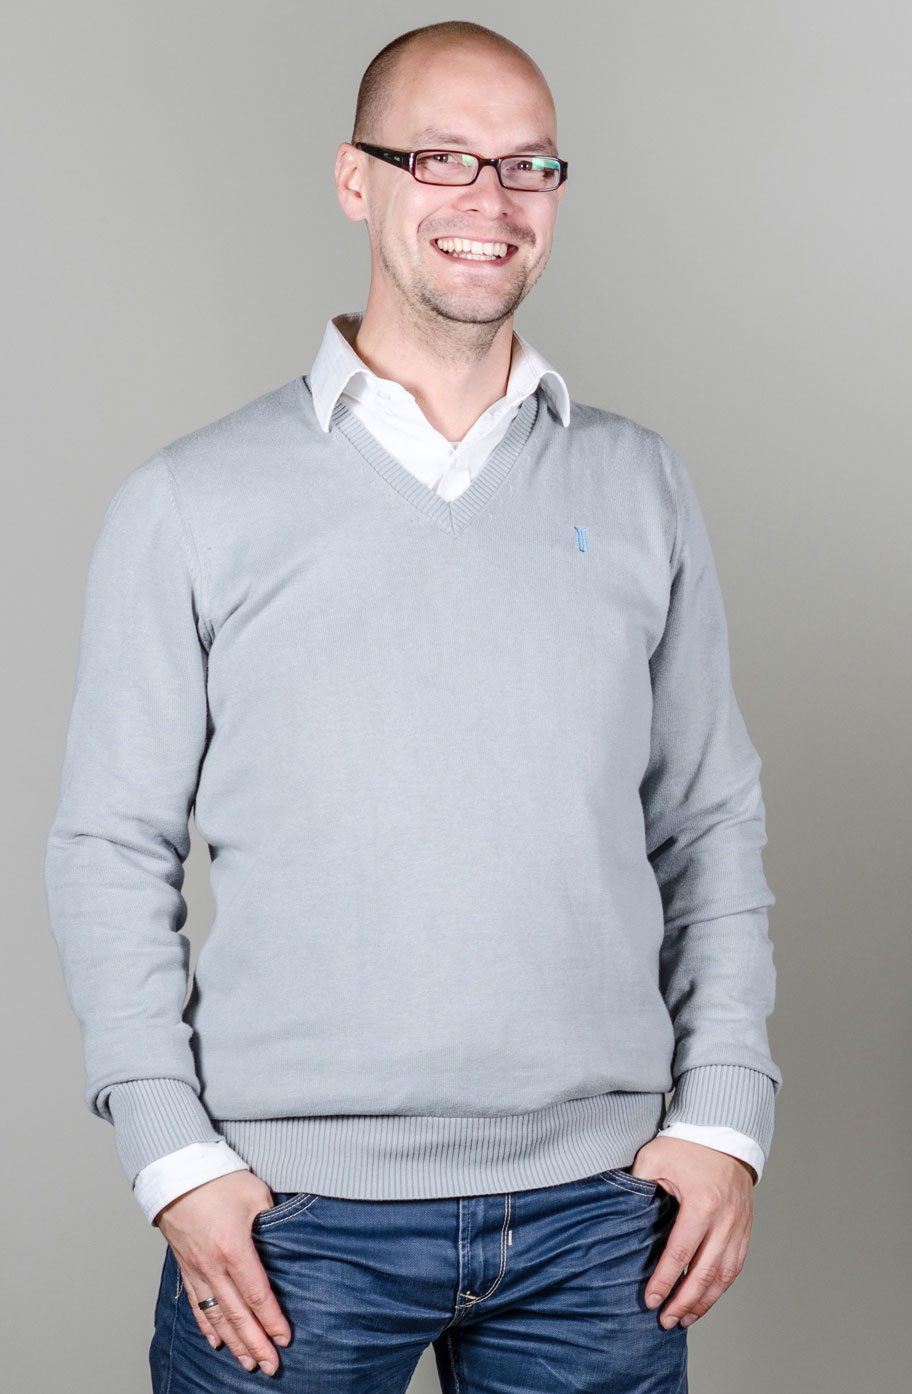 Christian Köhler MBB owner and CEO